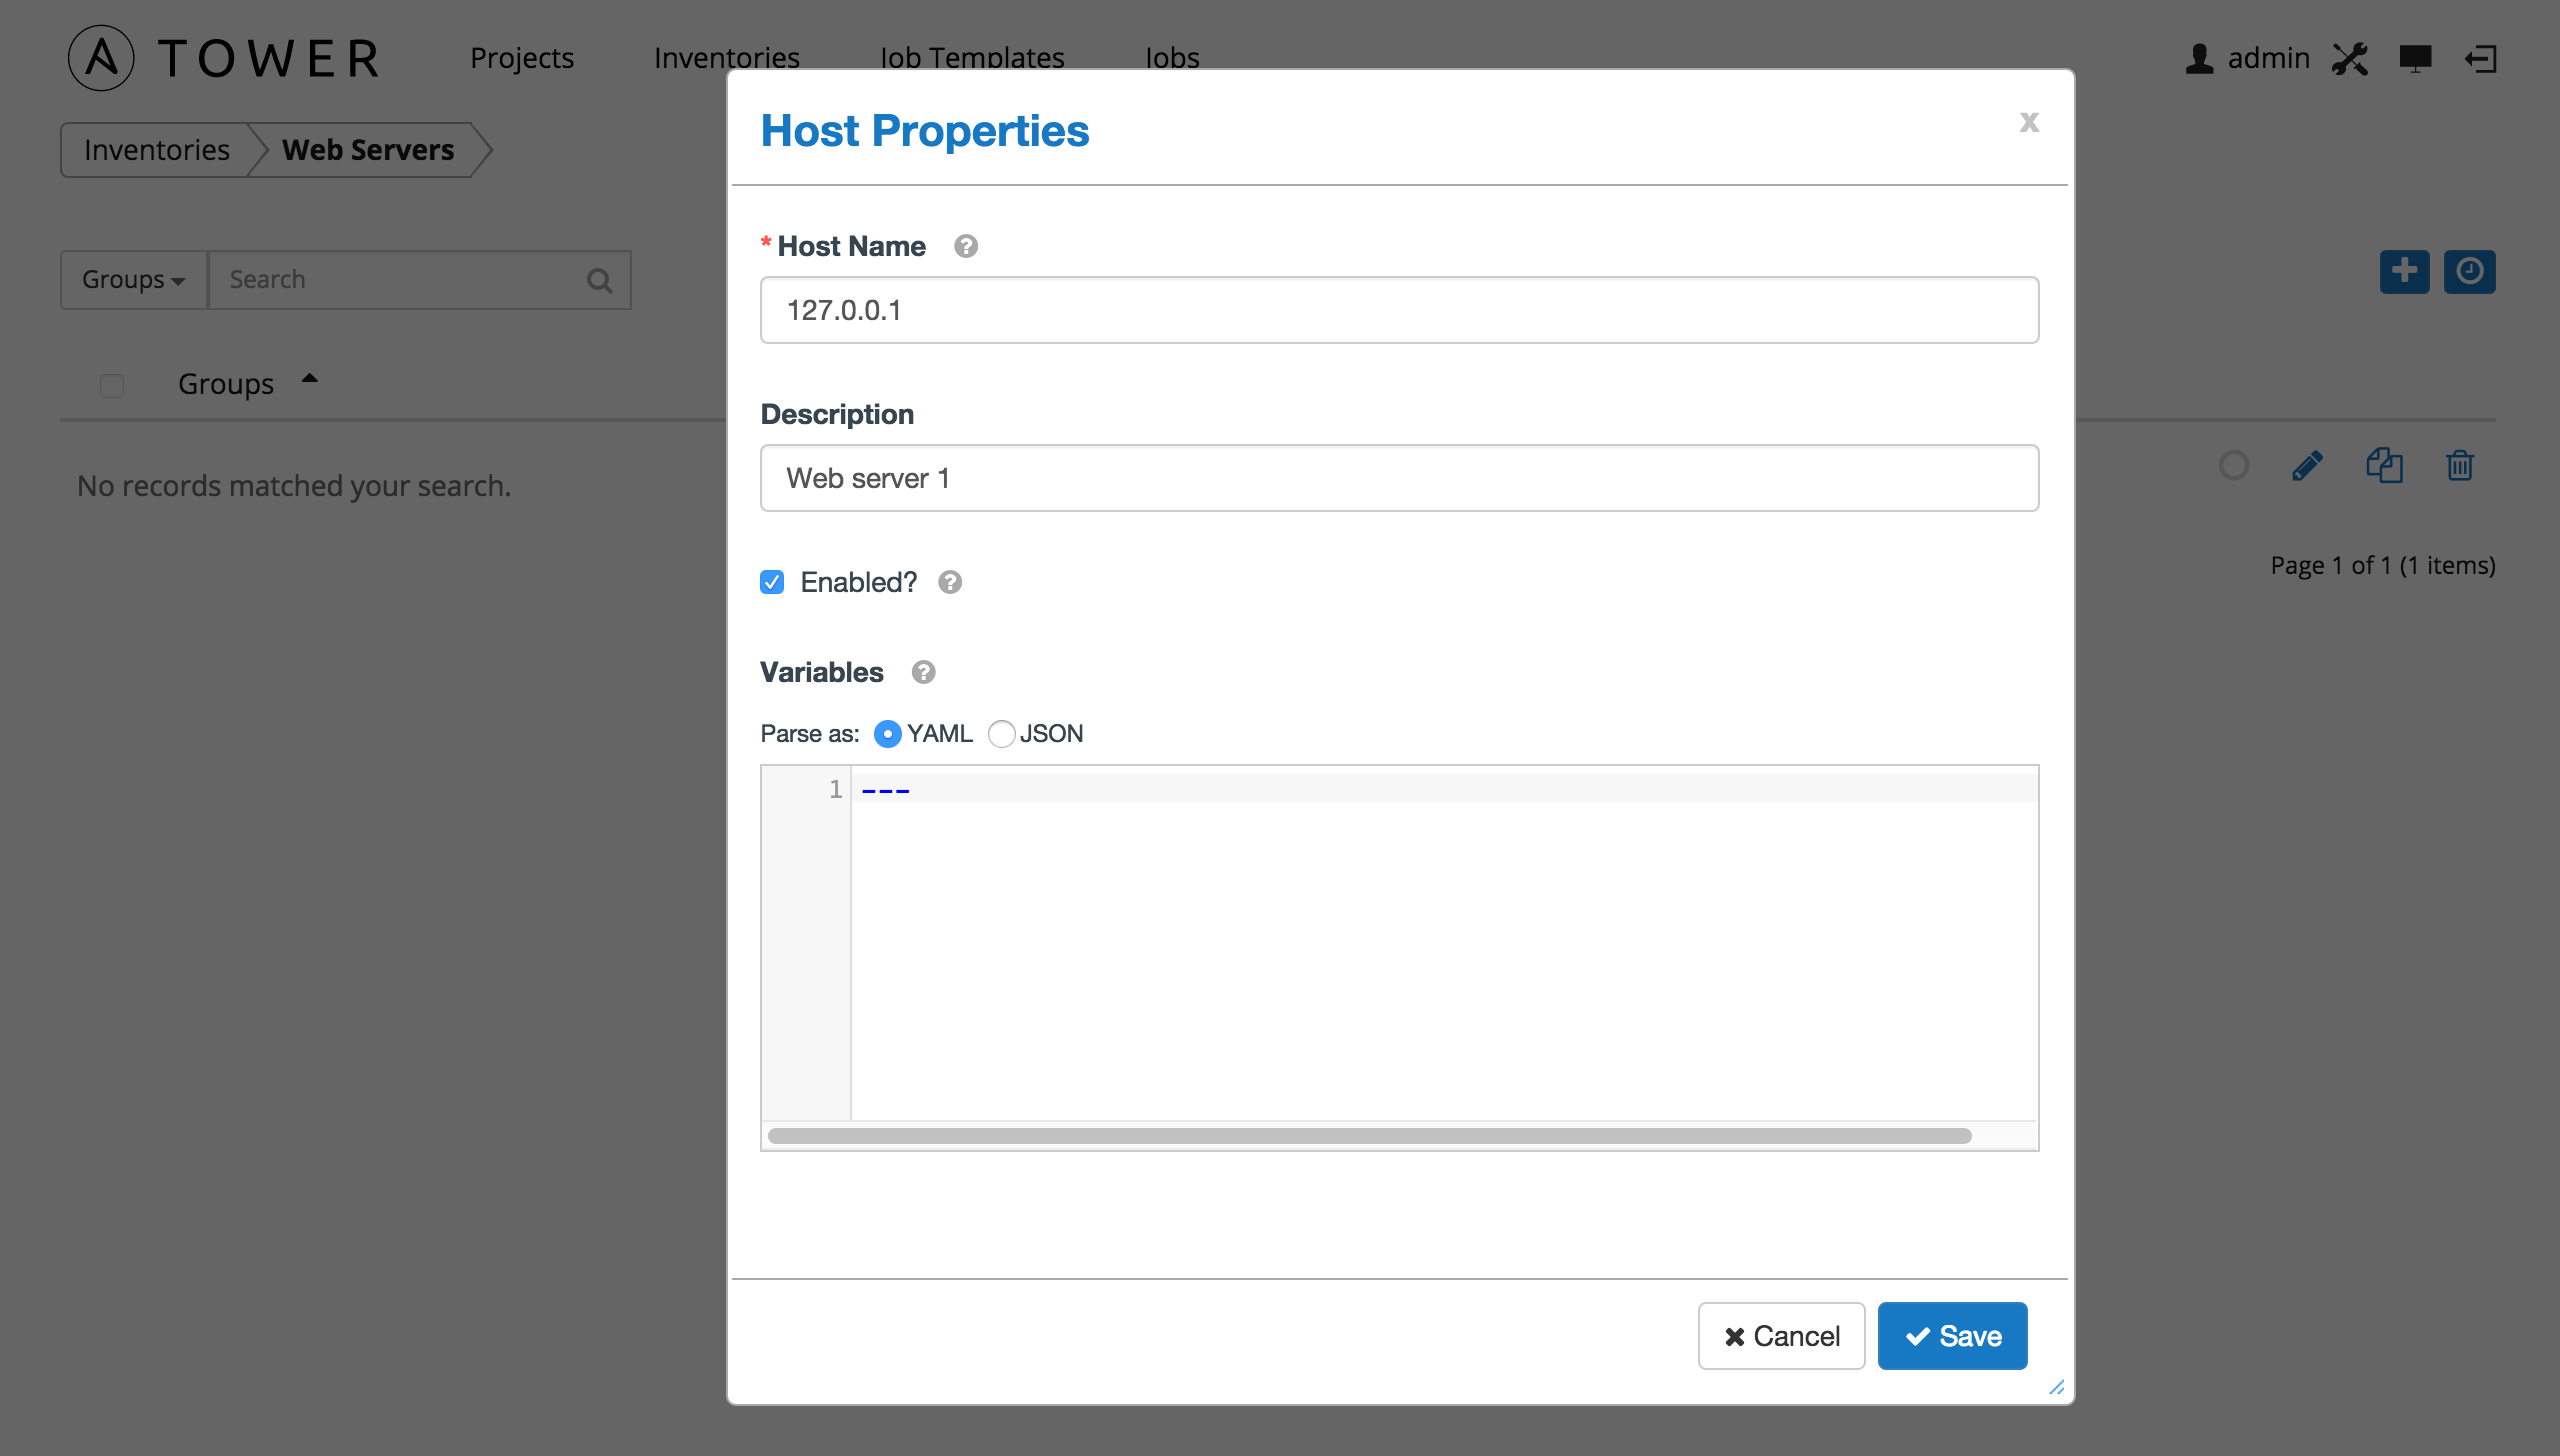 ansible_tower_qs-inventories-host-properties-form